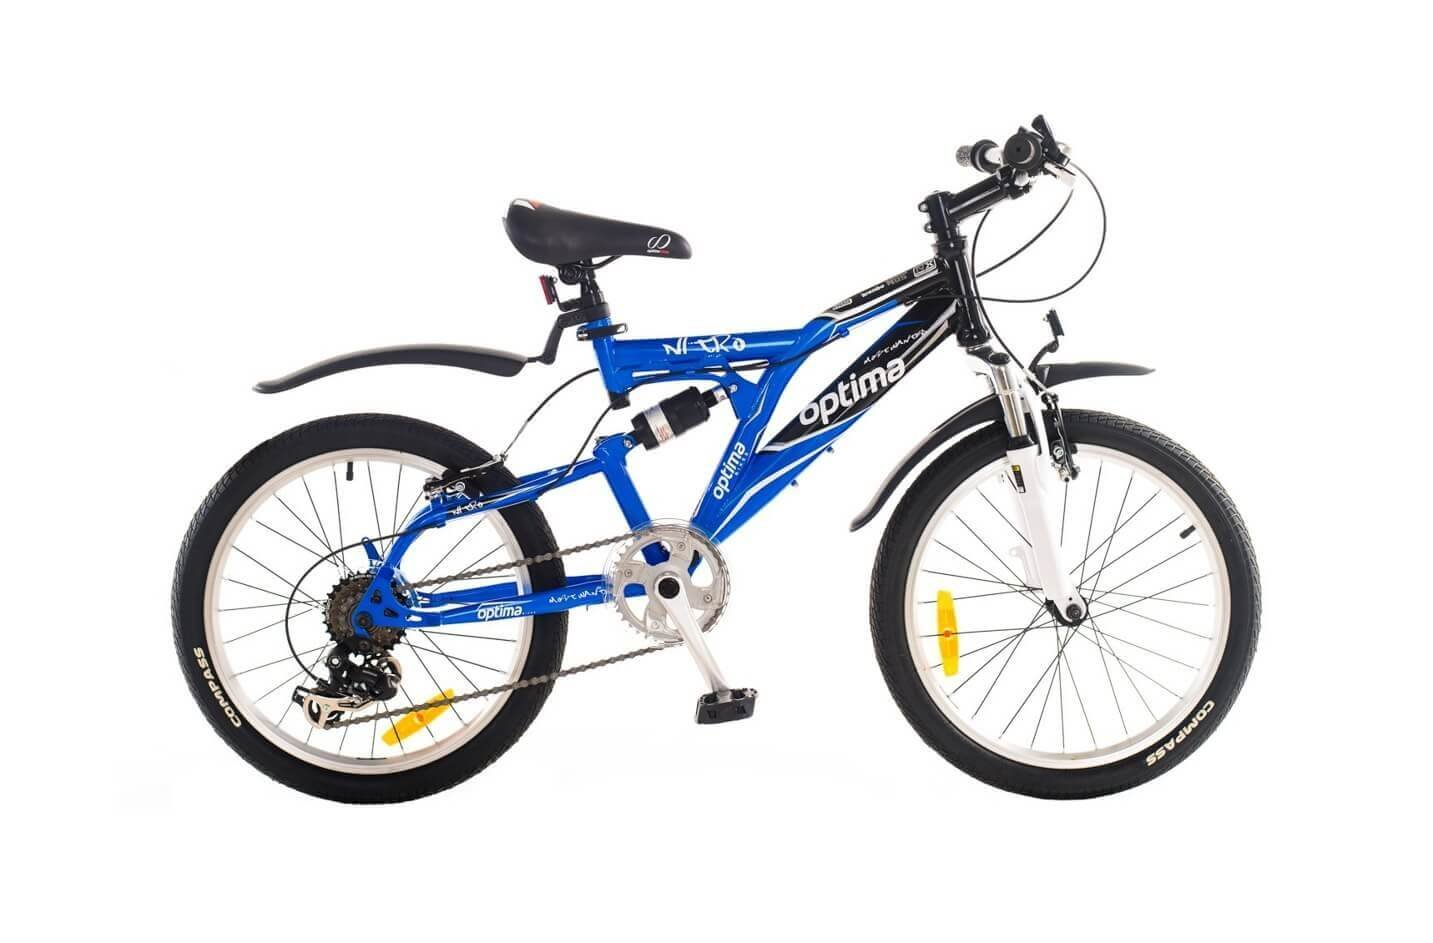 20 OPTIMABIKES NITRO